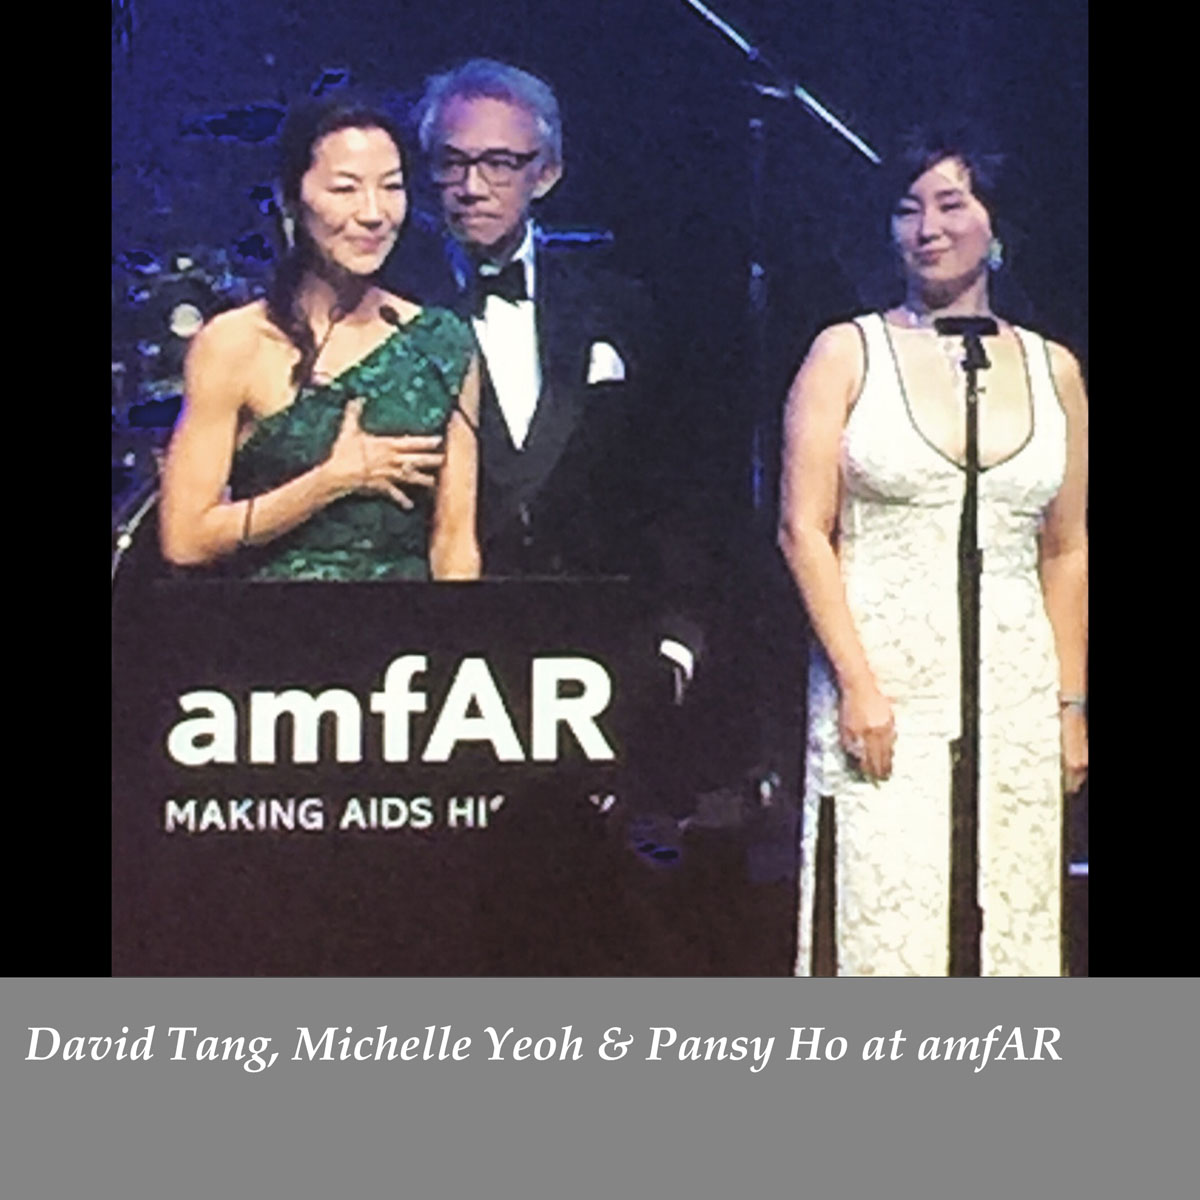 David-Tang-Michelle-Yeoh-Pansy-Ho-at-amfAR